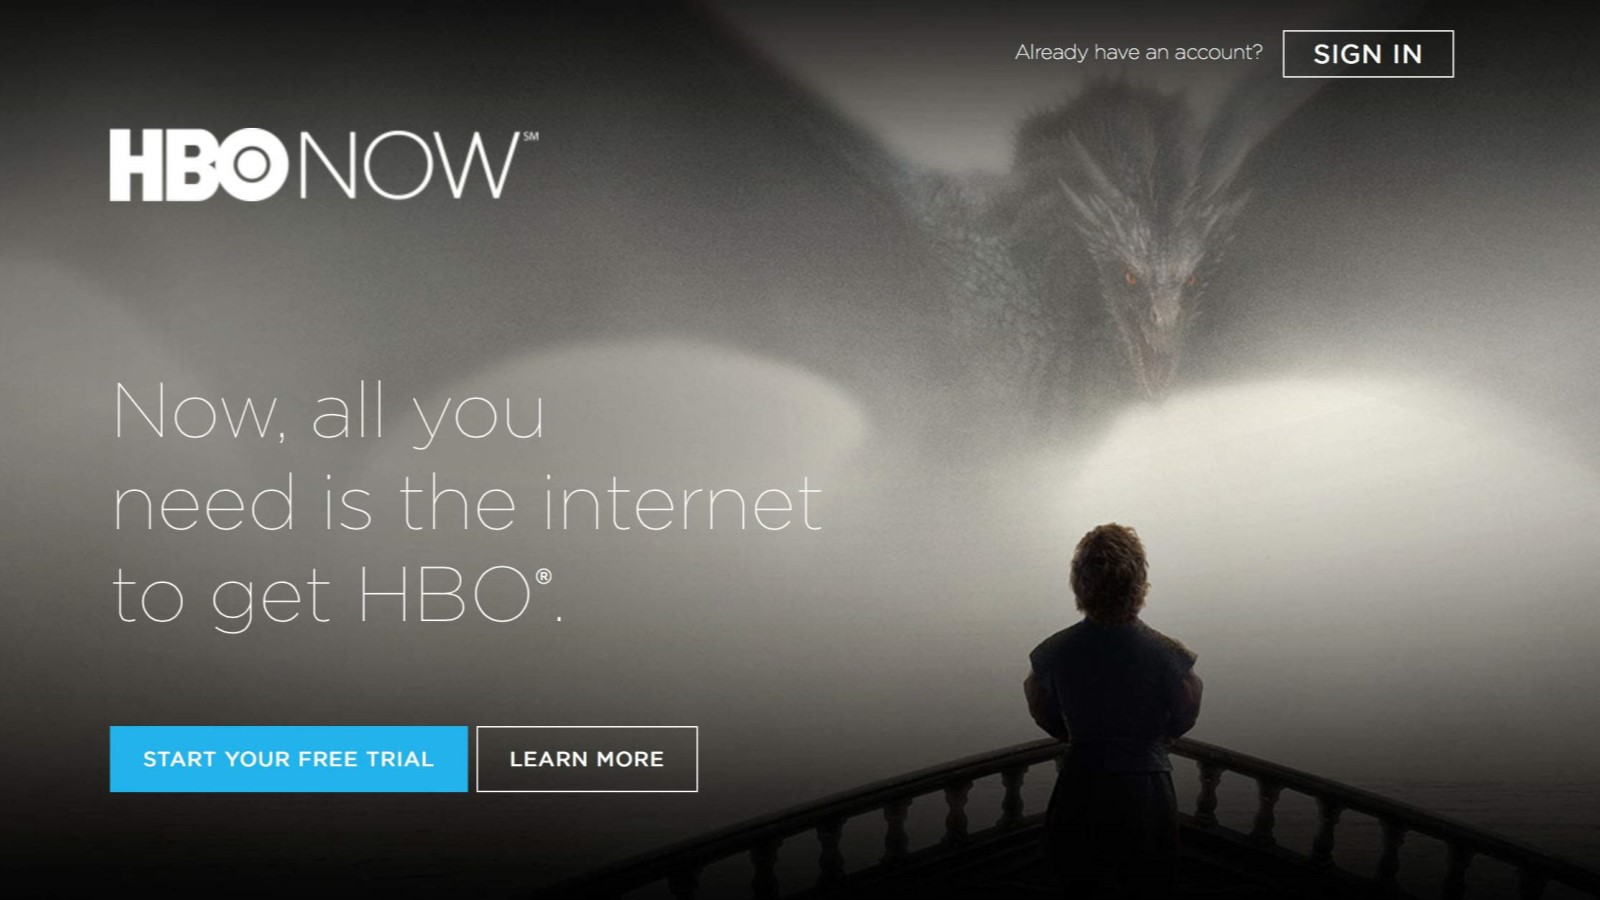 HBO NOW Account